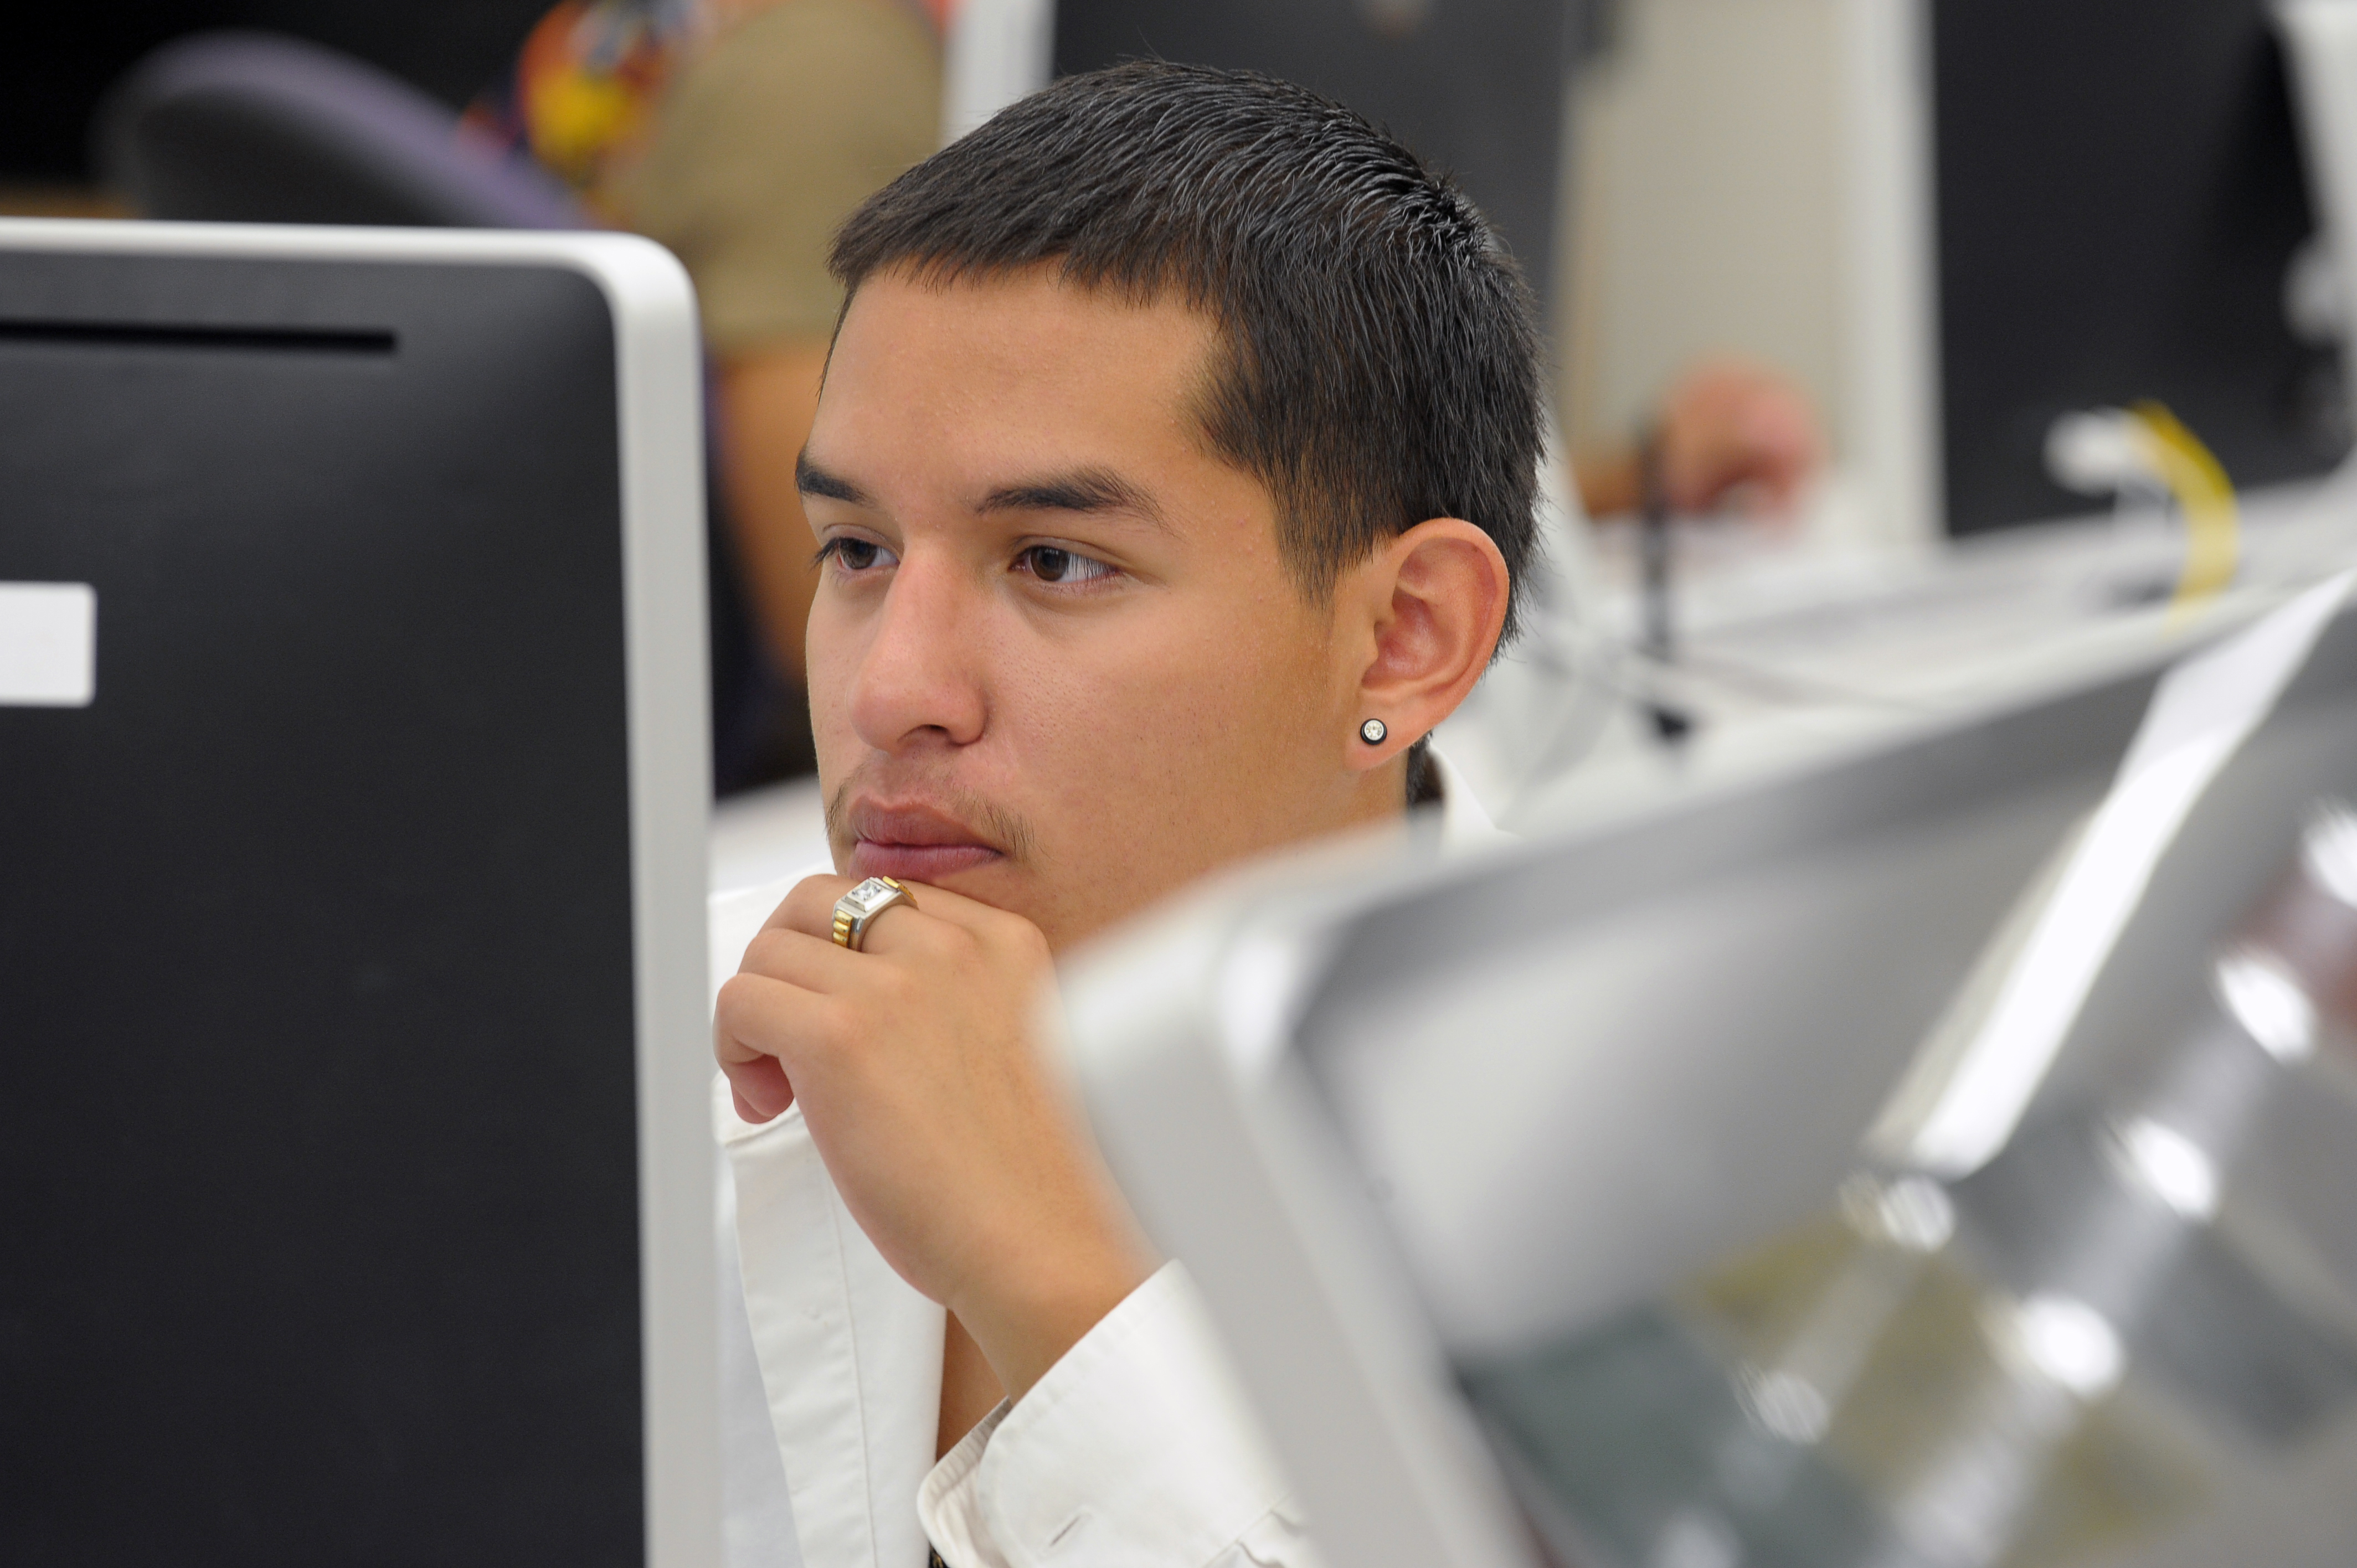 A male student sitting at a computer monitor